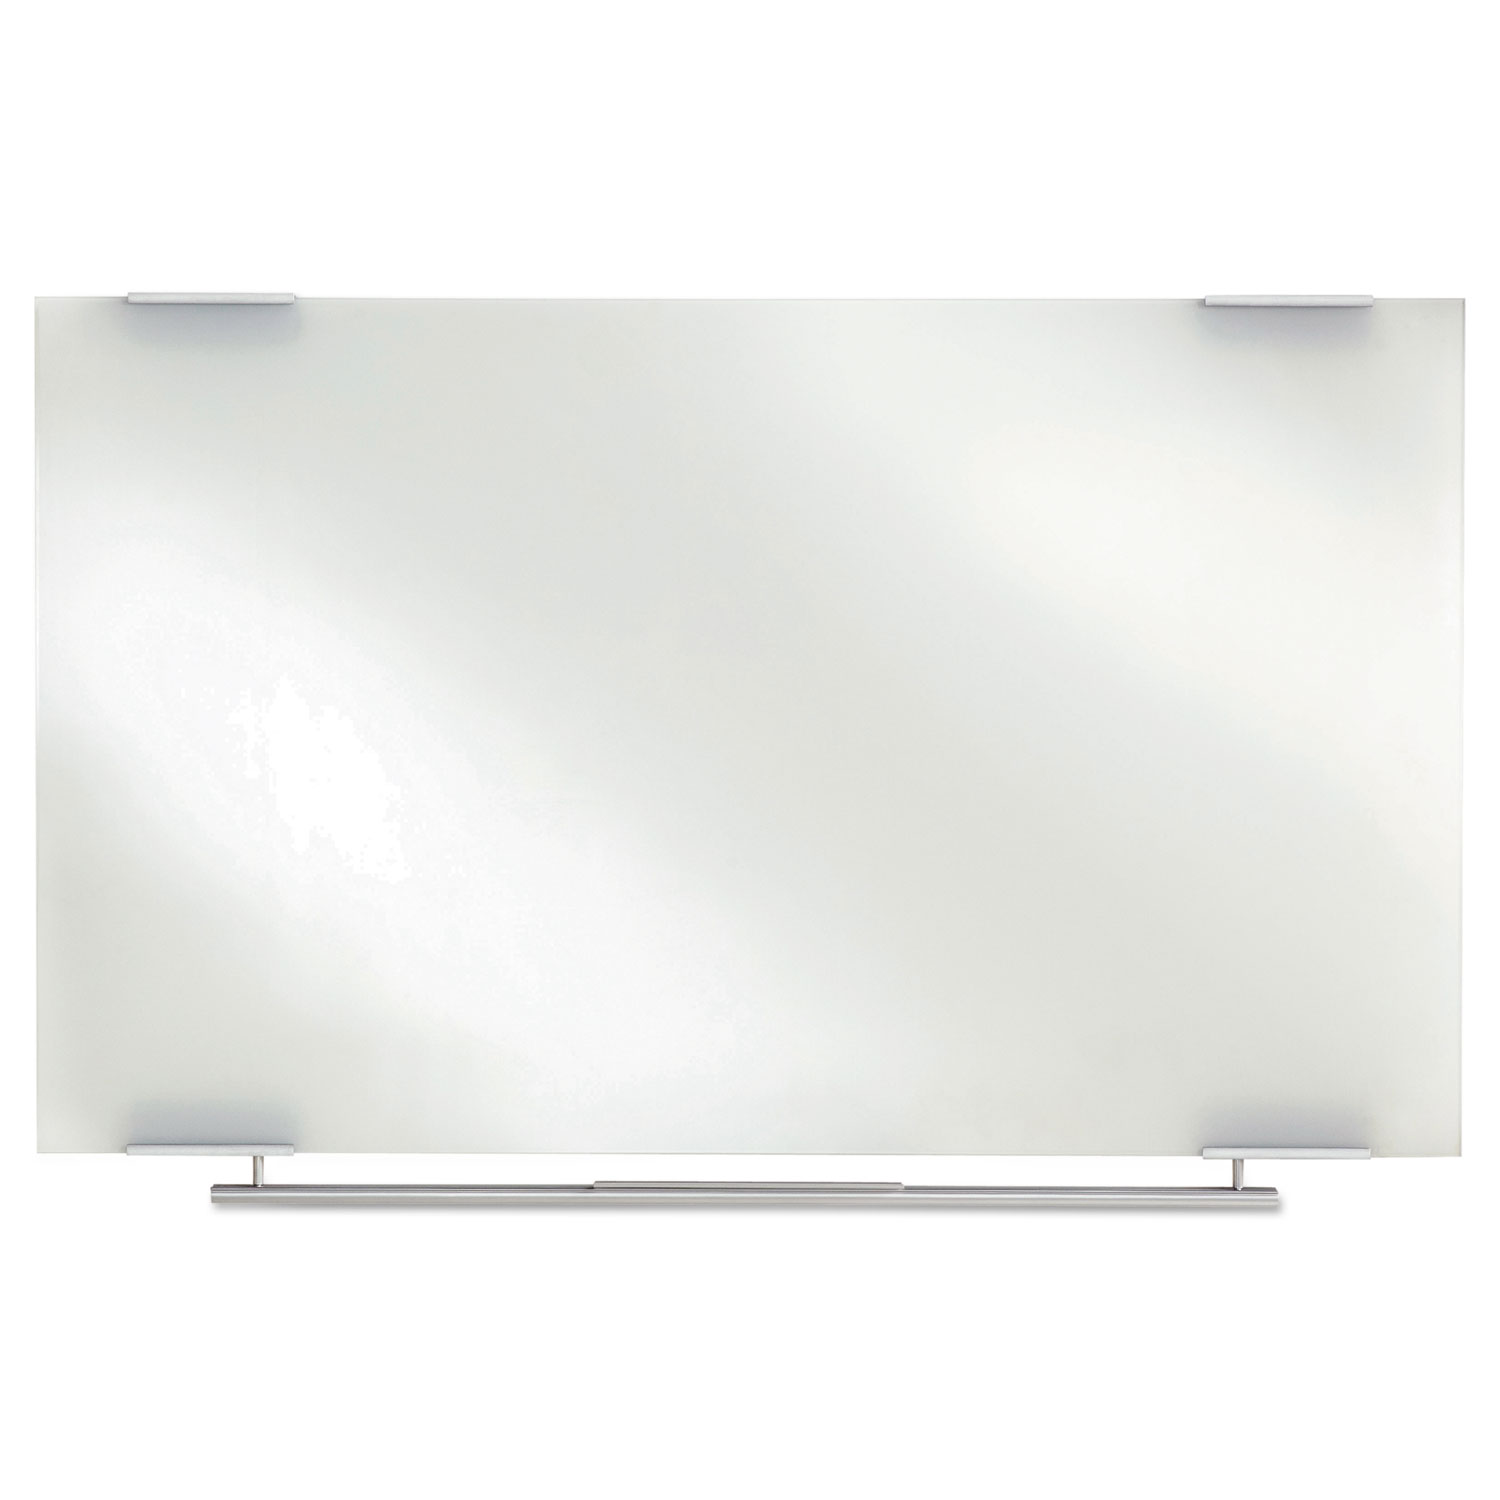 clarity glass dry erase boards frameless 72 x 36 ice31160 thumbnail 1